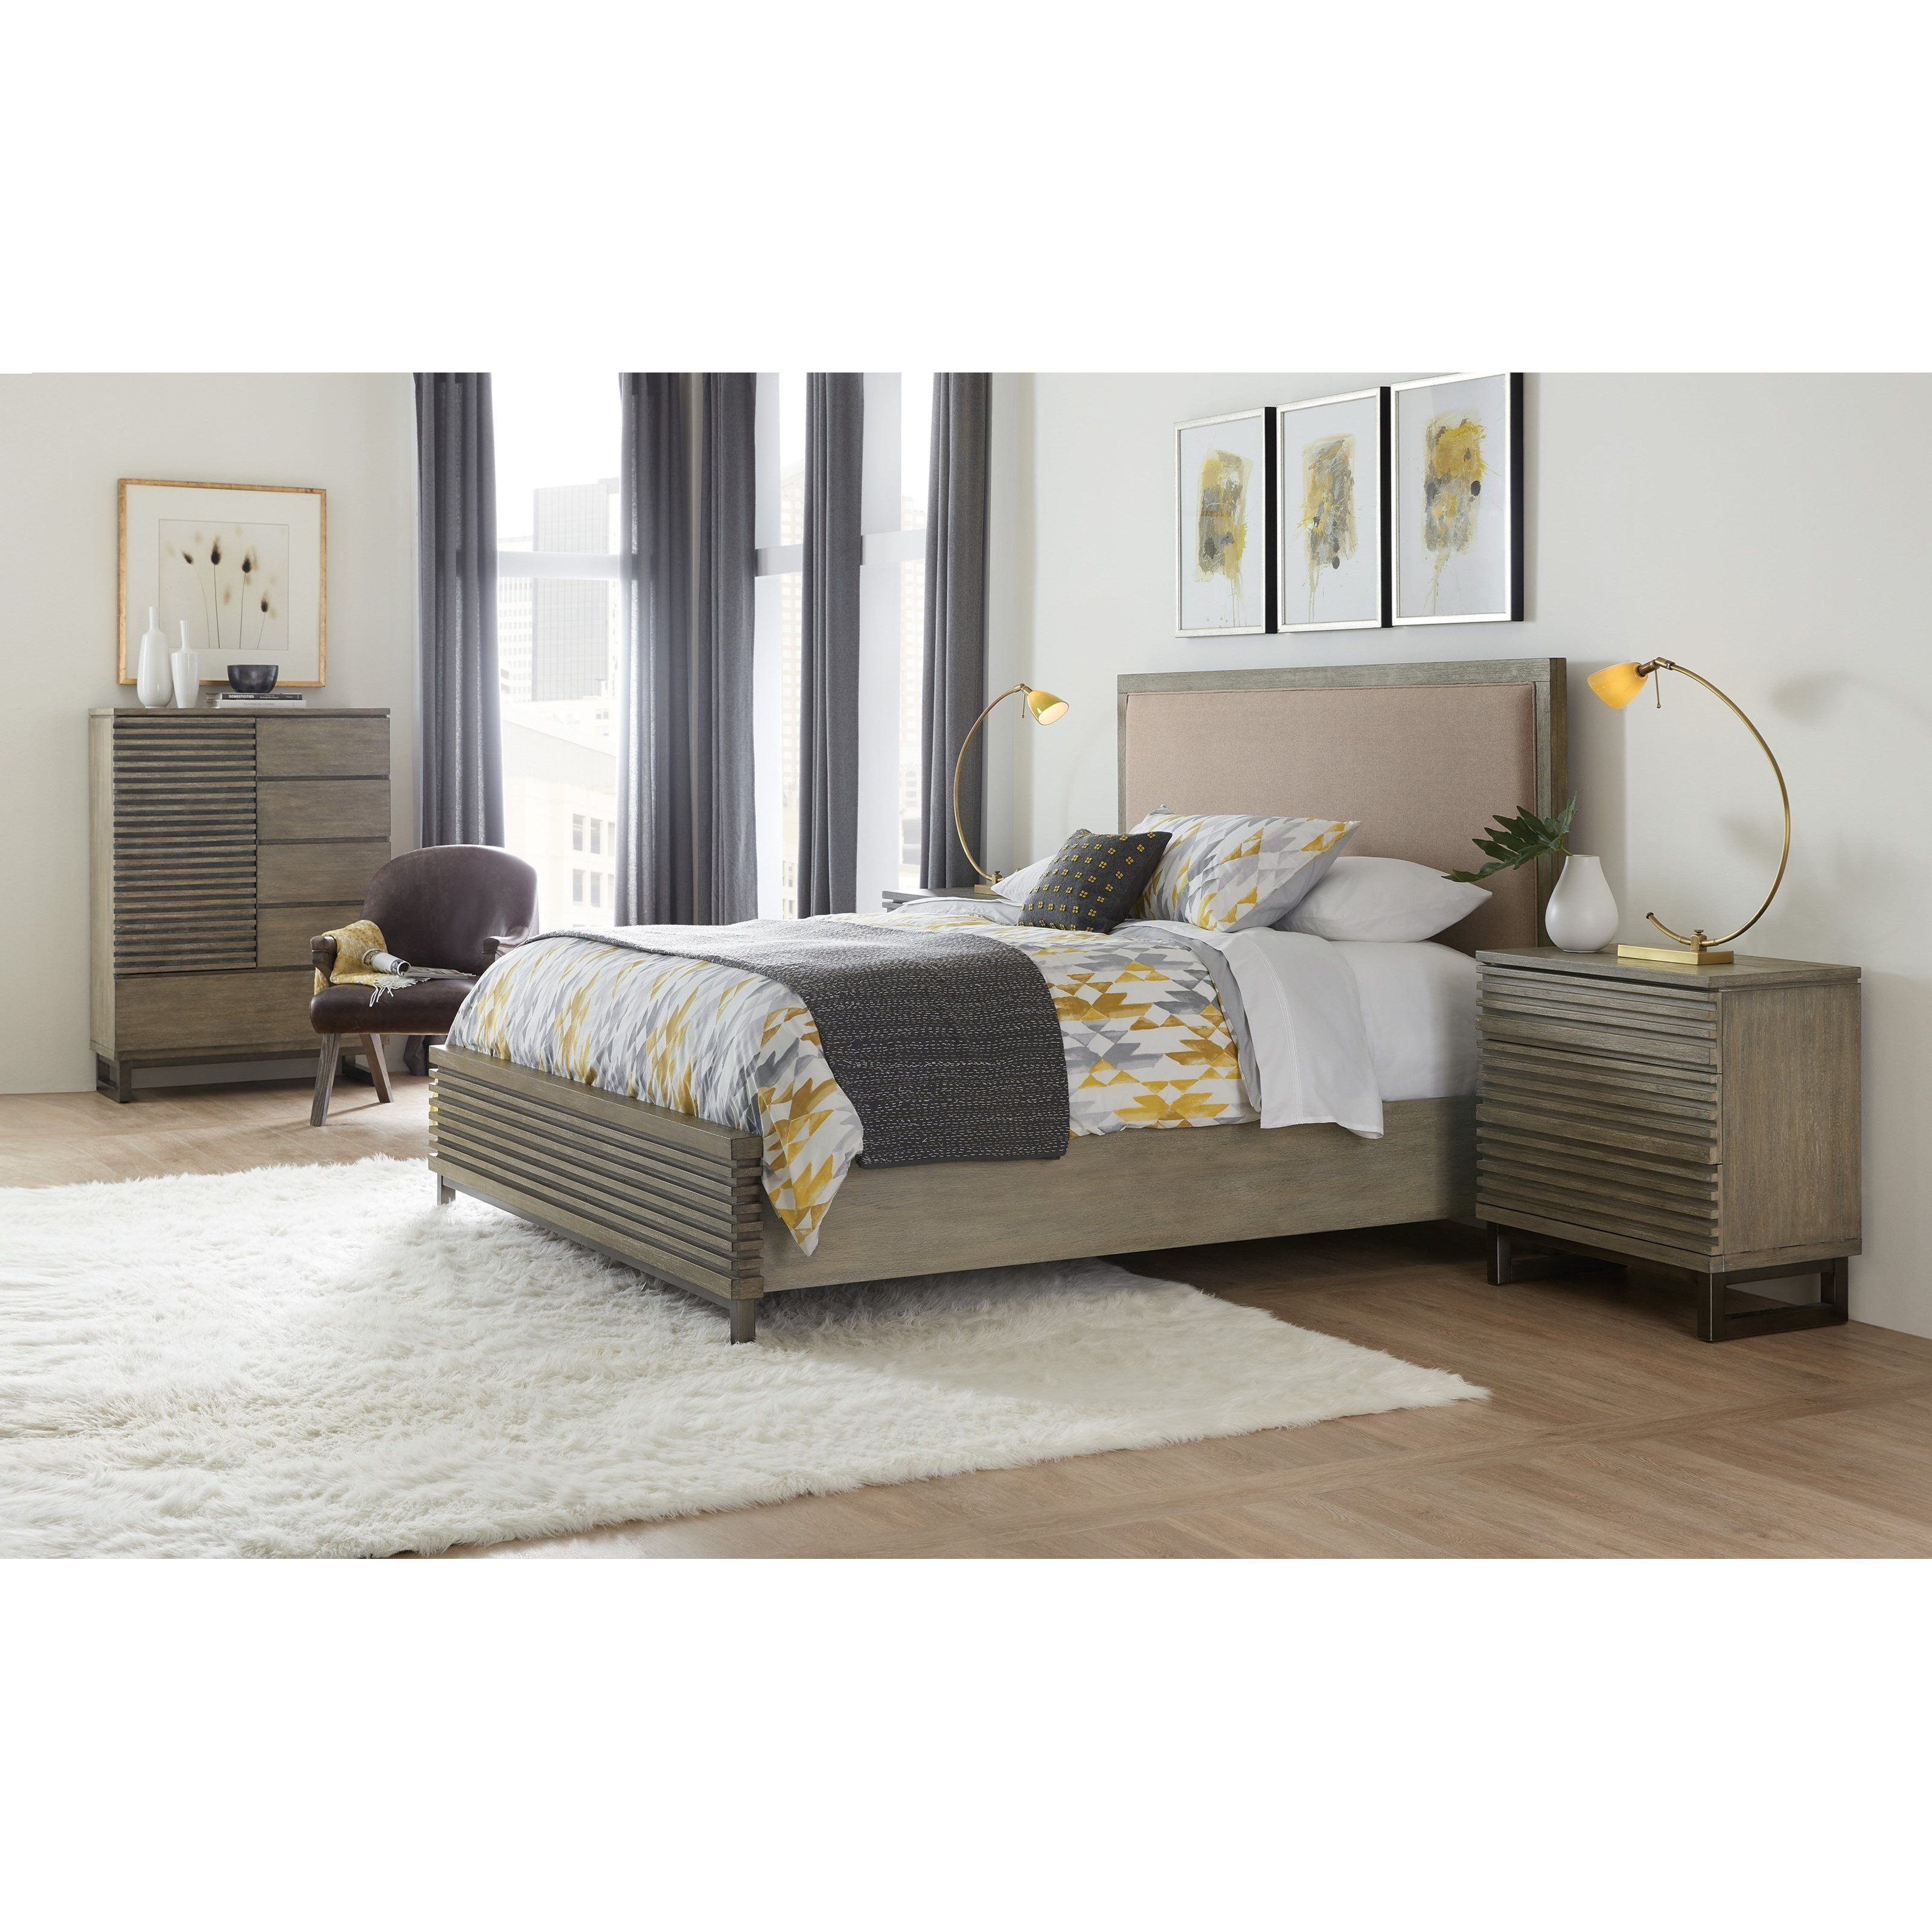 Annex Queen Bedroom Group by Hamilton Home at Sprintz Furniture